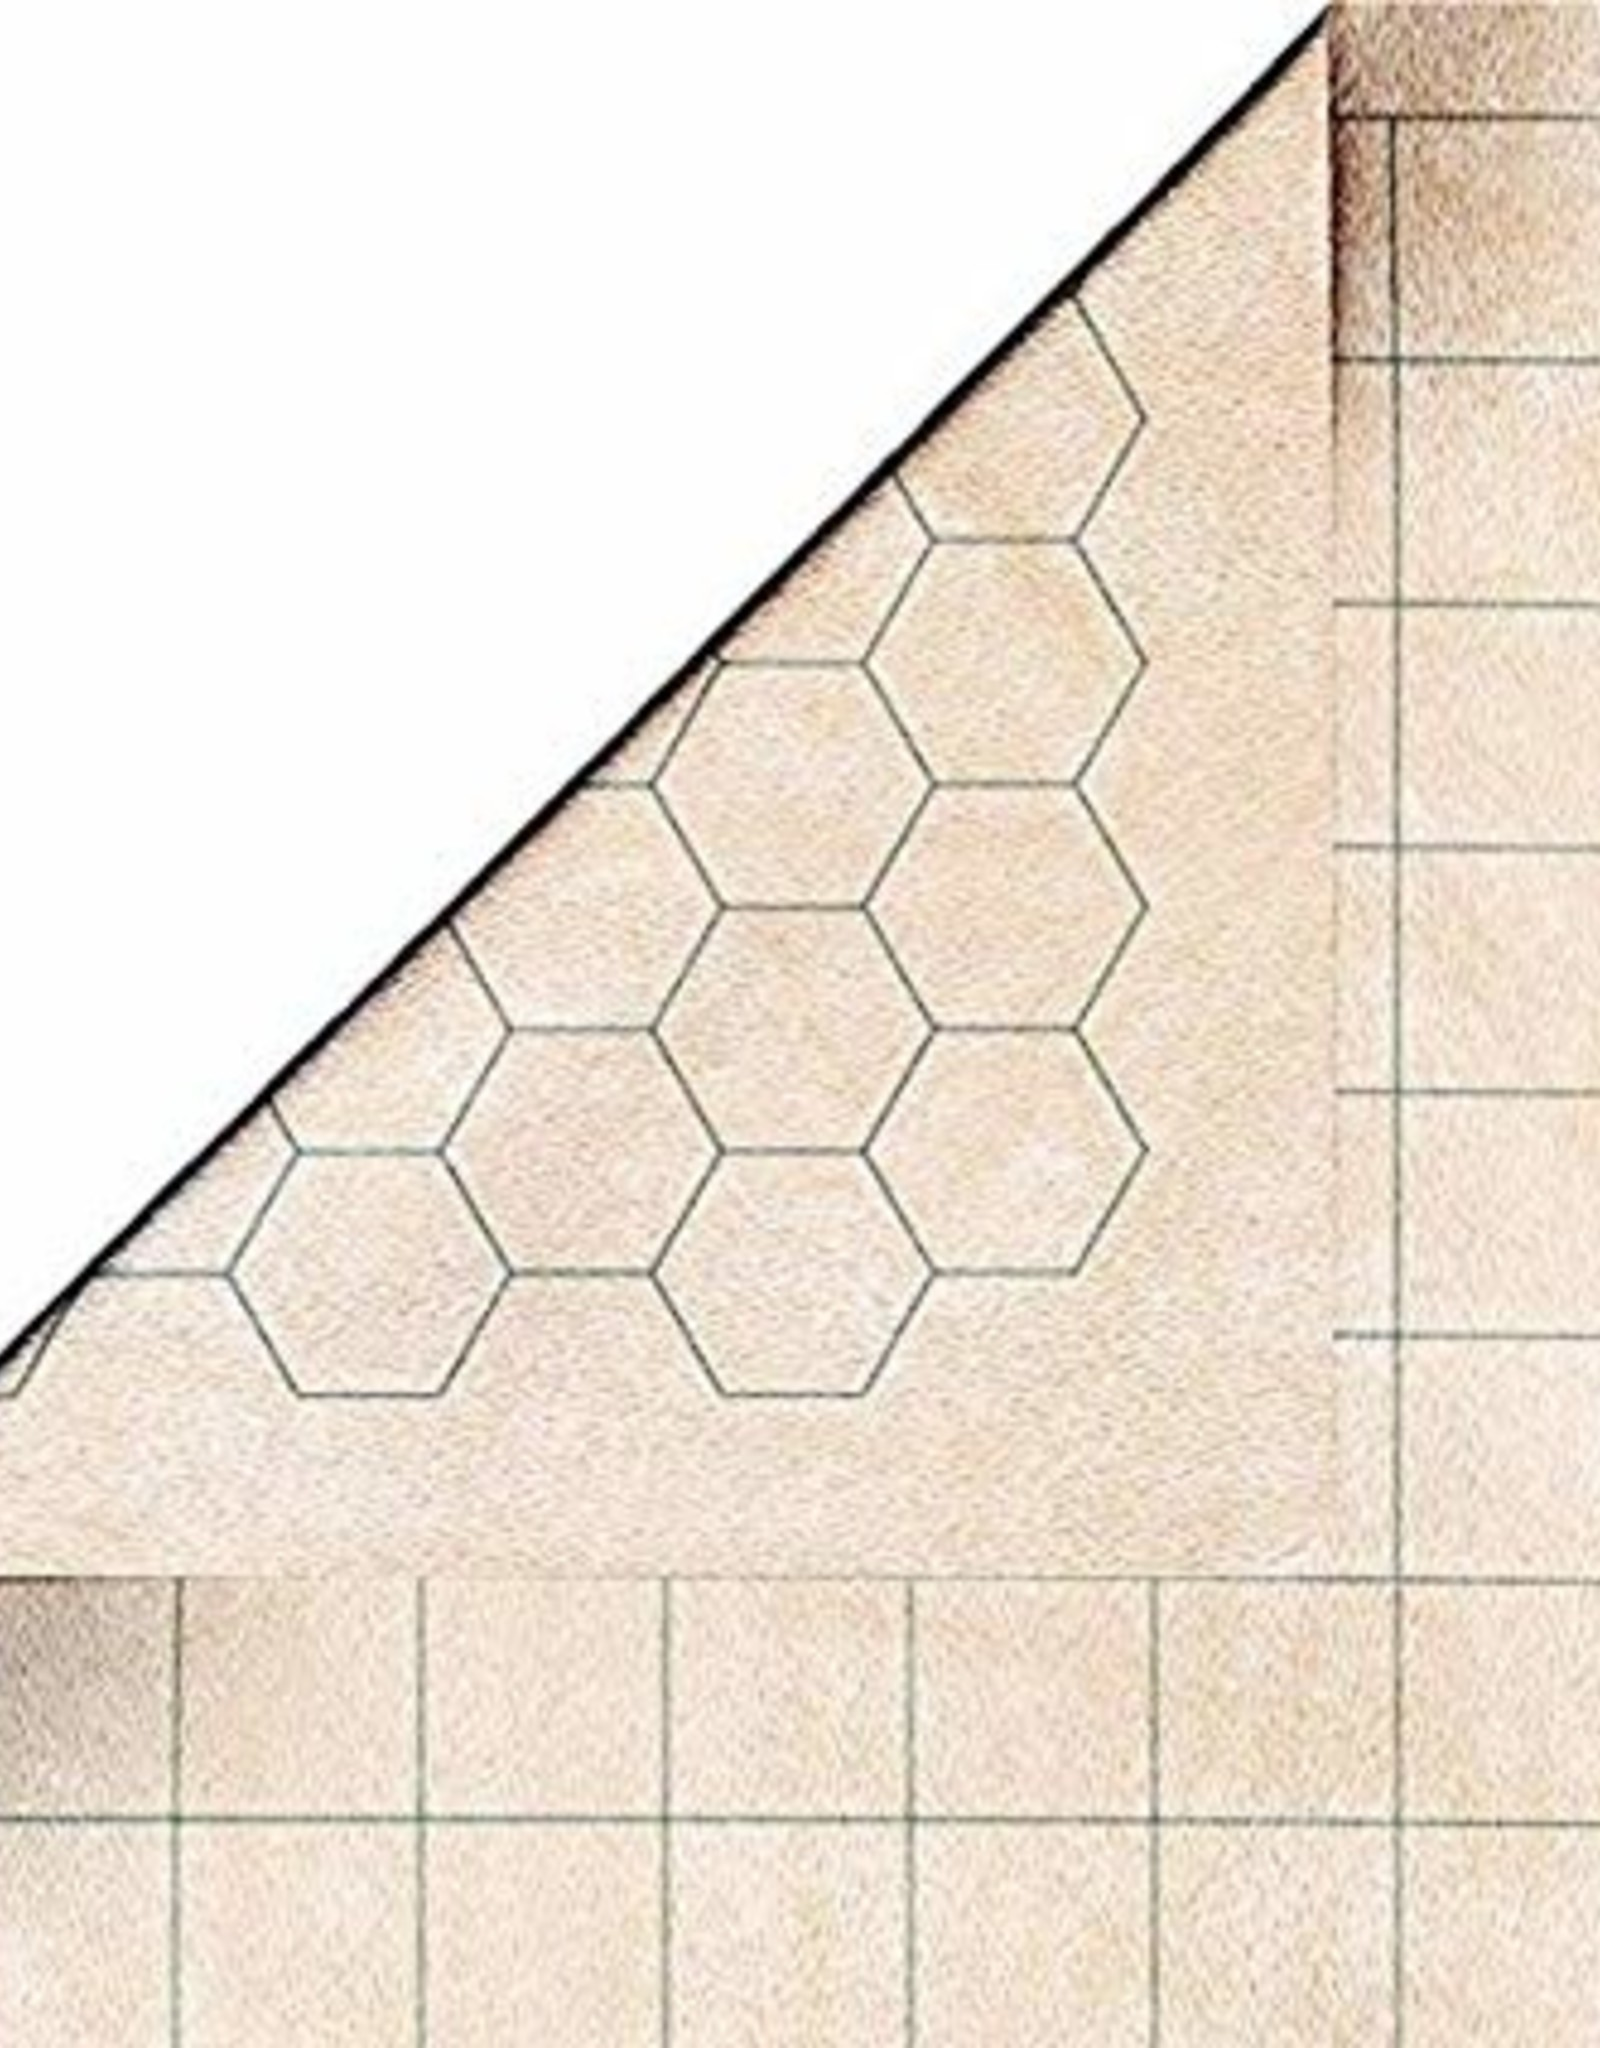 Double-Sided Megamat With 1 Inch Squares/Hexes